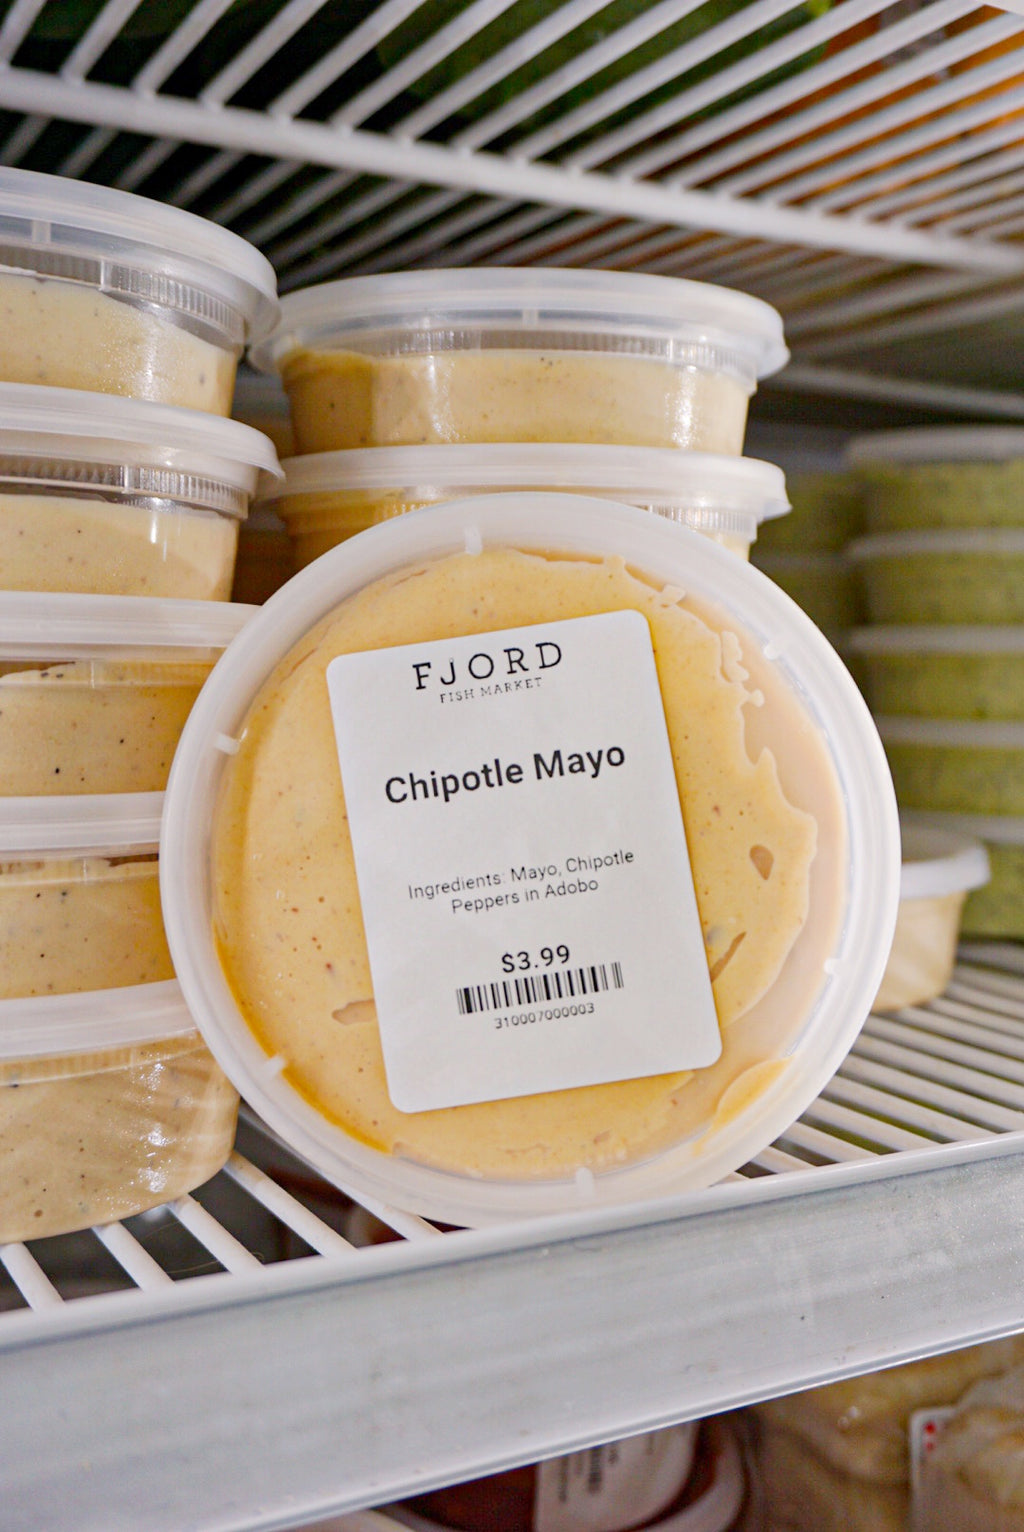 Chipotle Mayo - Park Slope